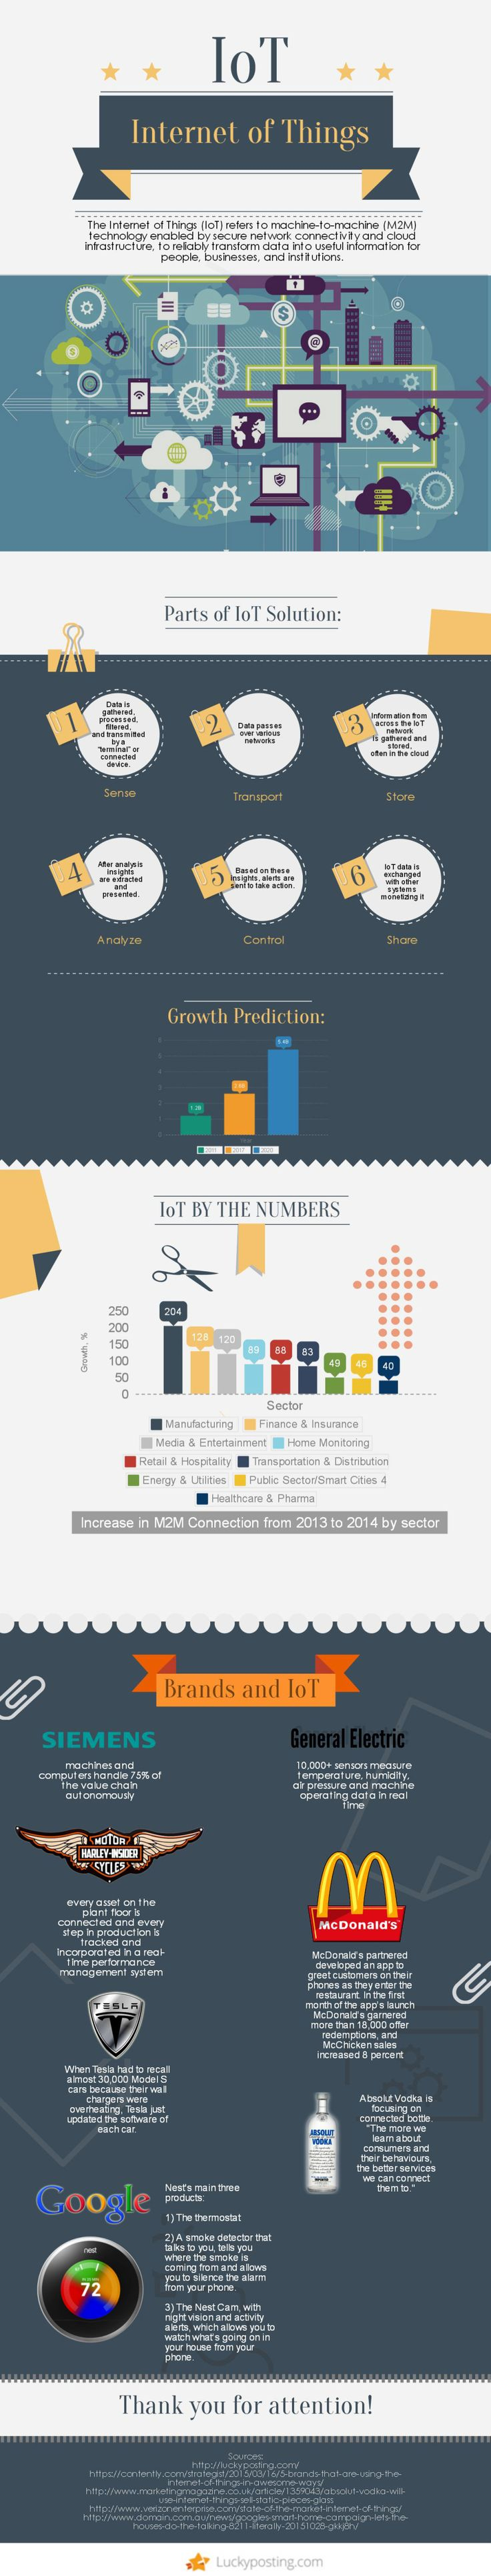 IoT_facts_infographic.jpg